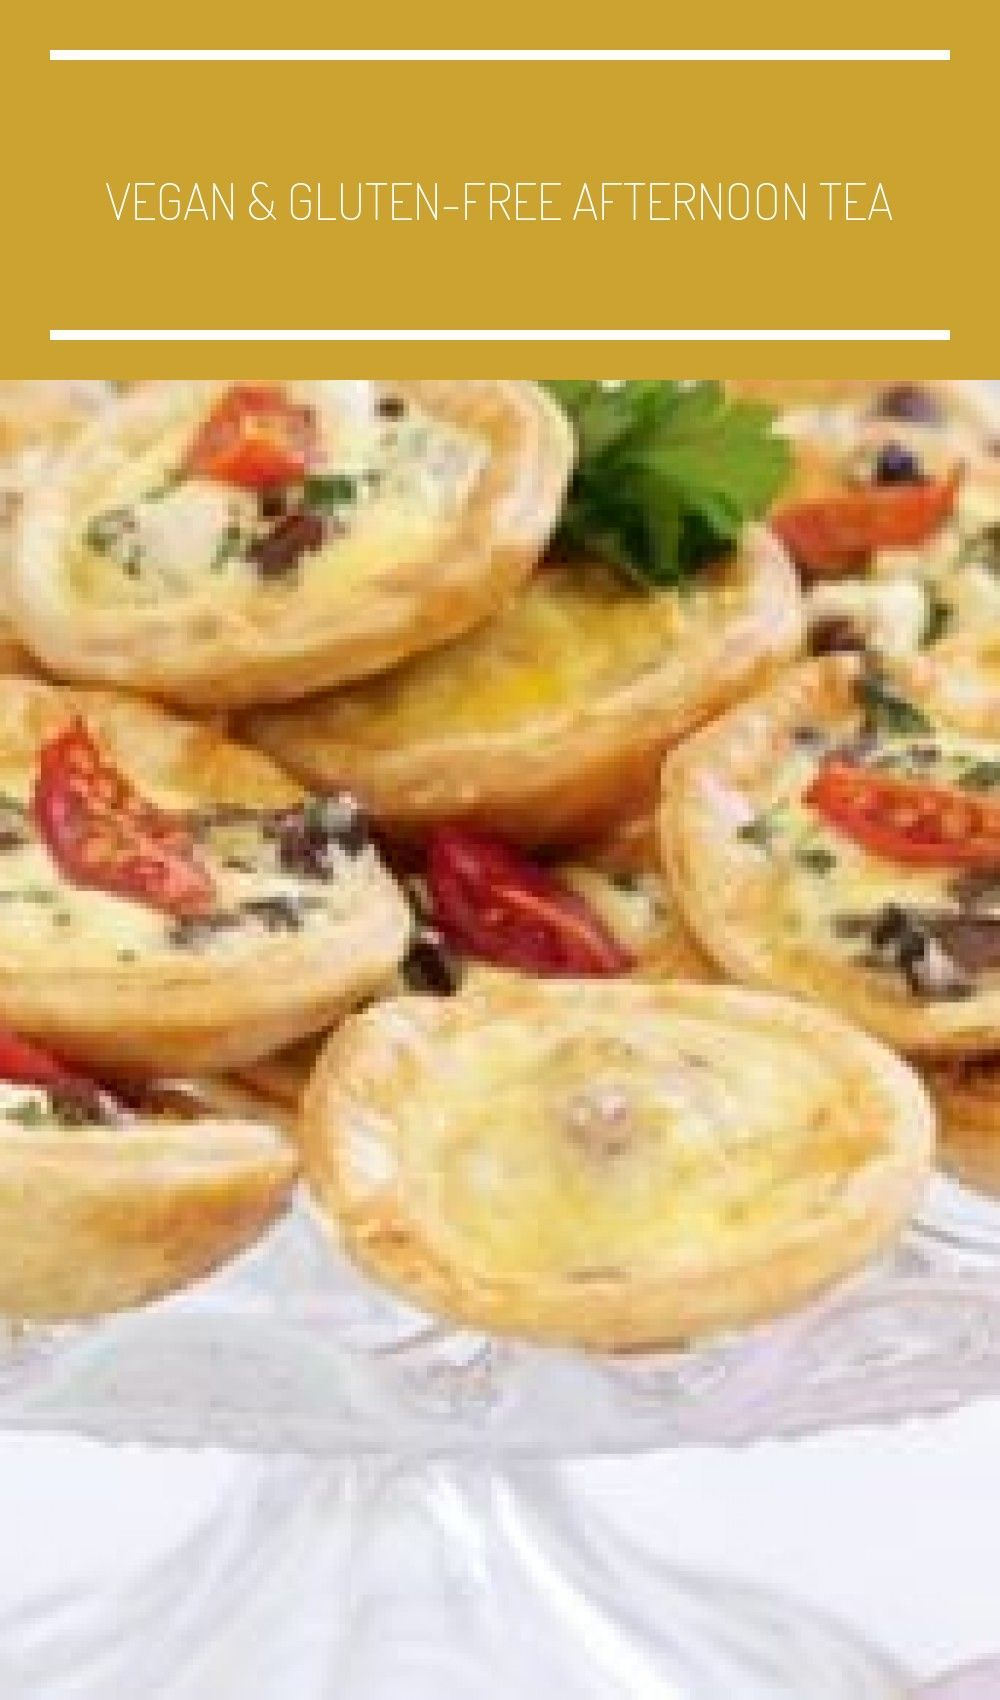 High tea recipes savoury #recipes #savoury | high tea rezepte herzhaft | recette... - #herzhaft #recette #recipes #rezepte #savoury - #HighTeaRecipes